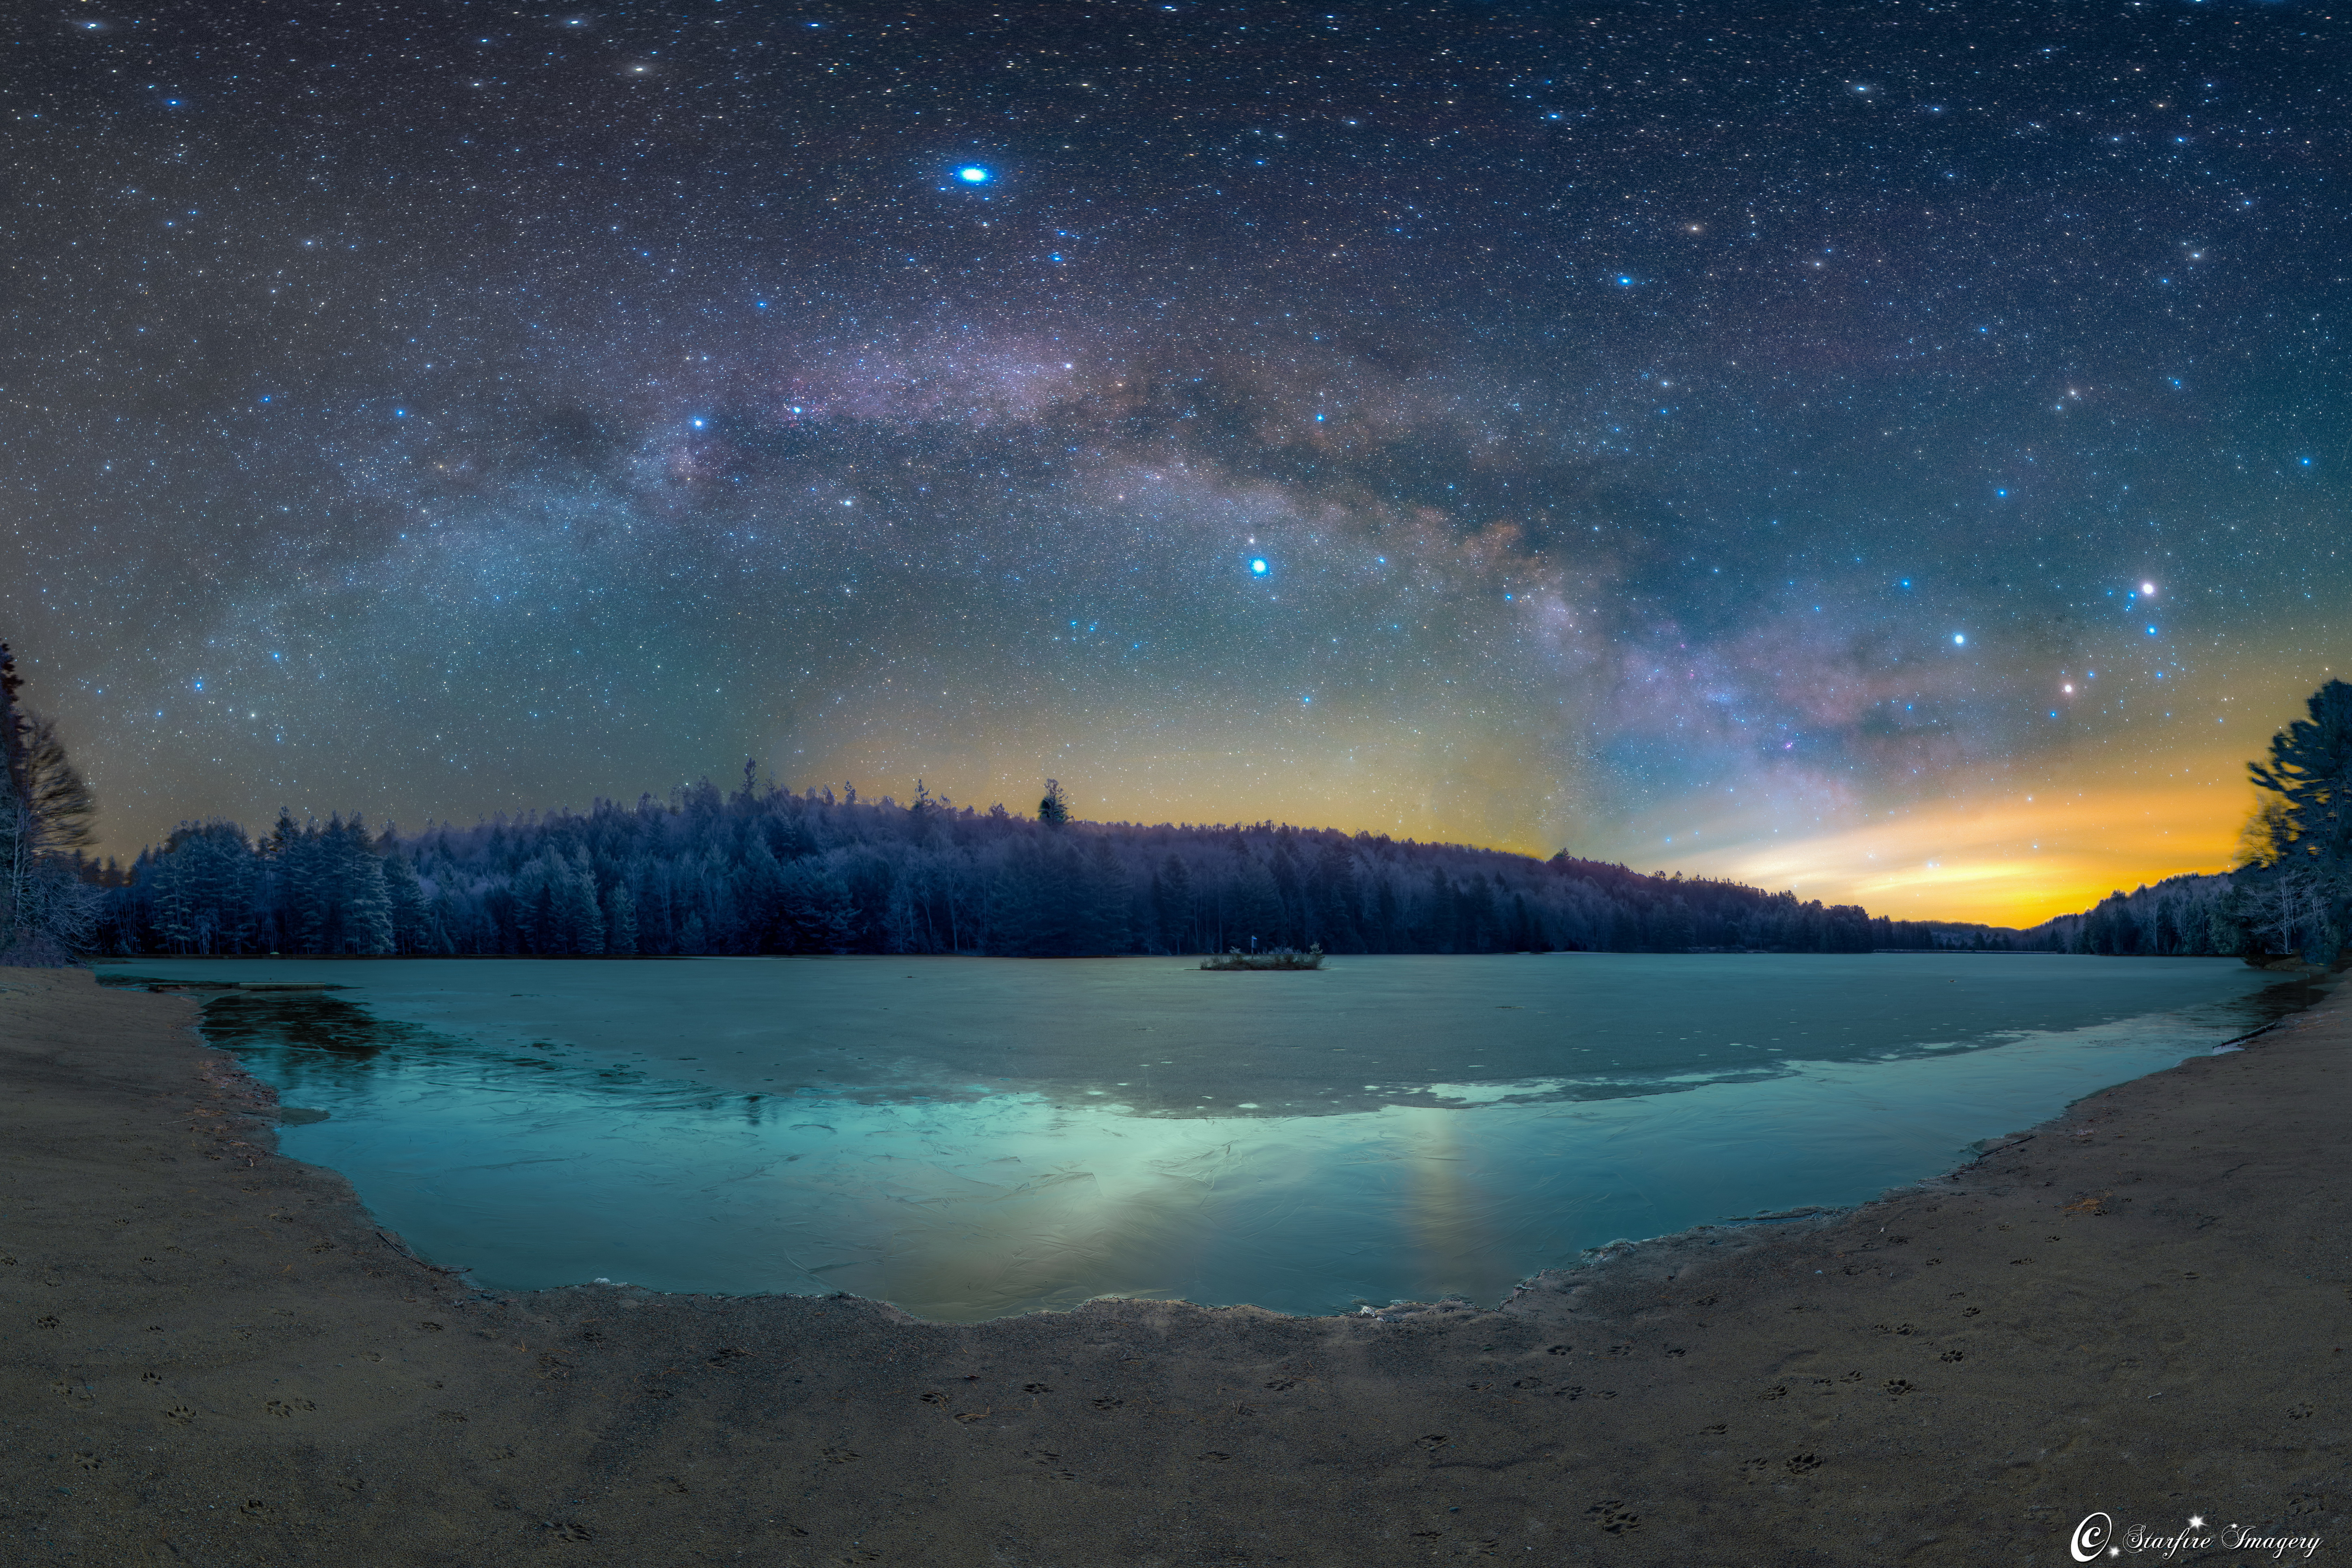 Morning Milky Way Shines Over Summer Triangle in Stunning Photo